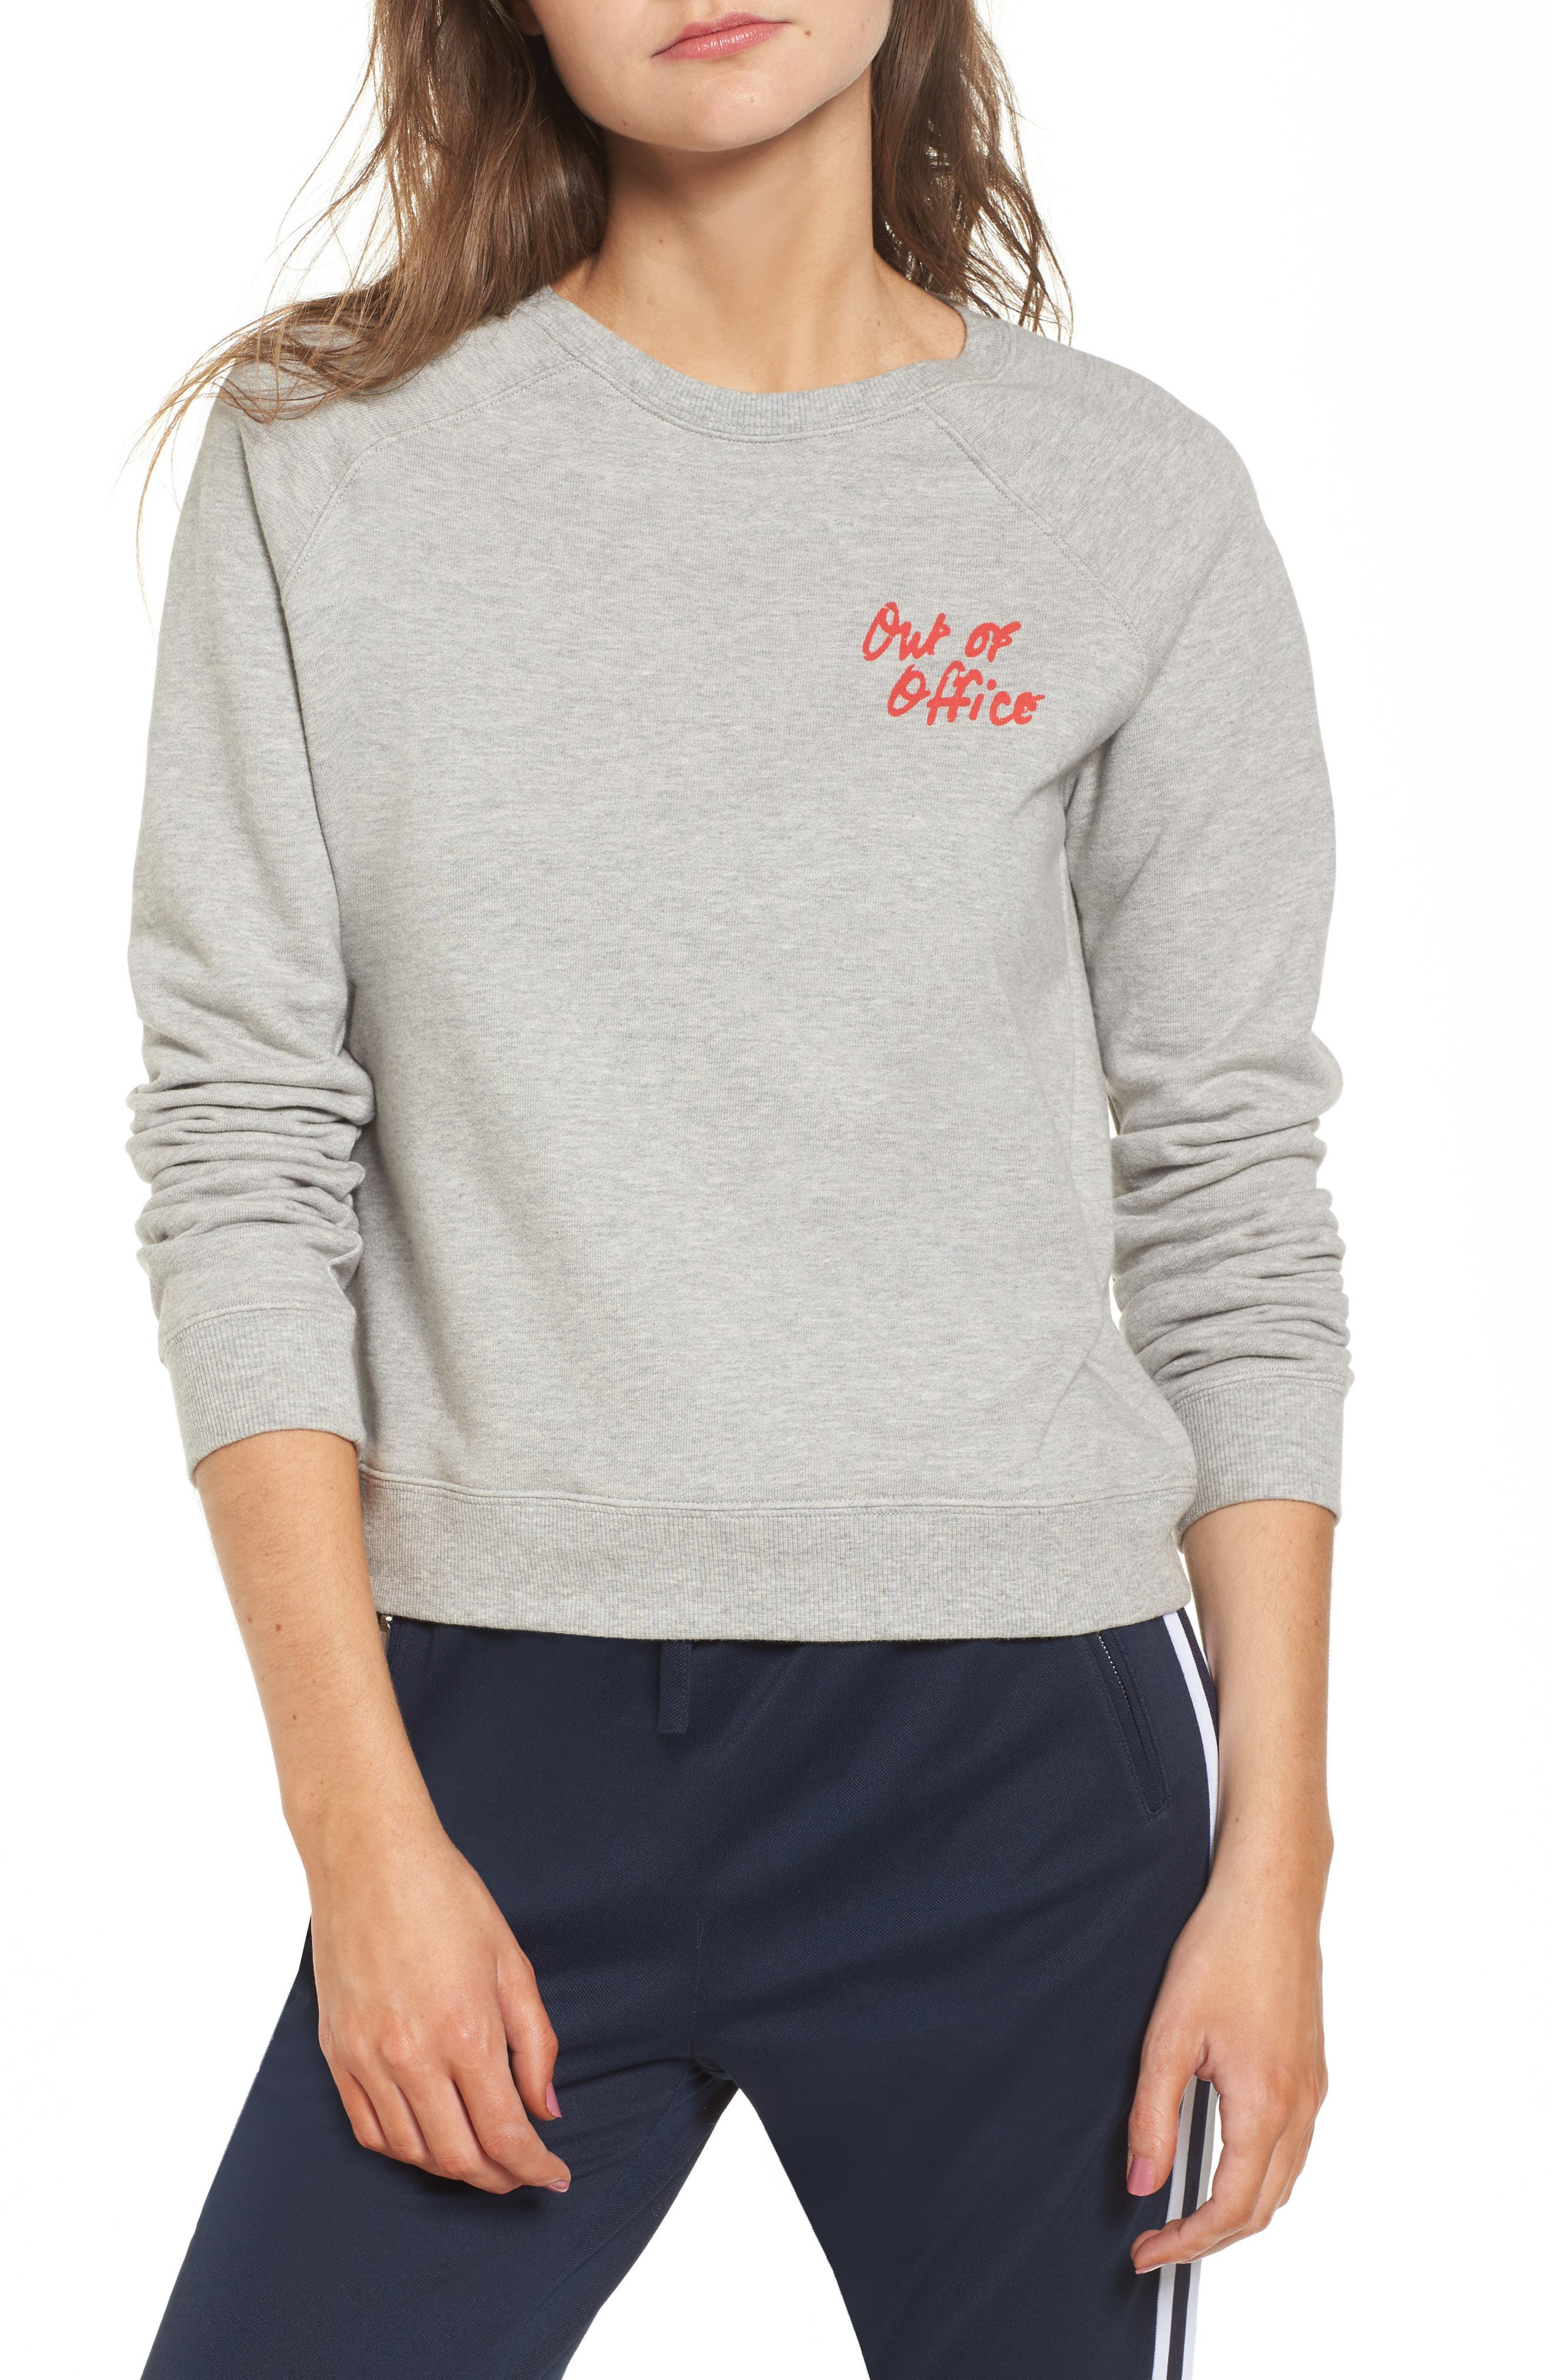 Out of Office Sweatshirt,                         Main,                         color,